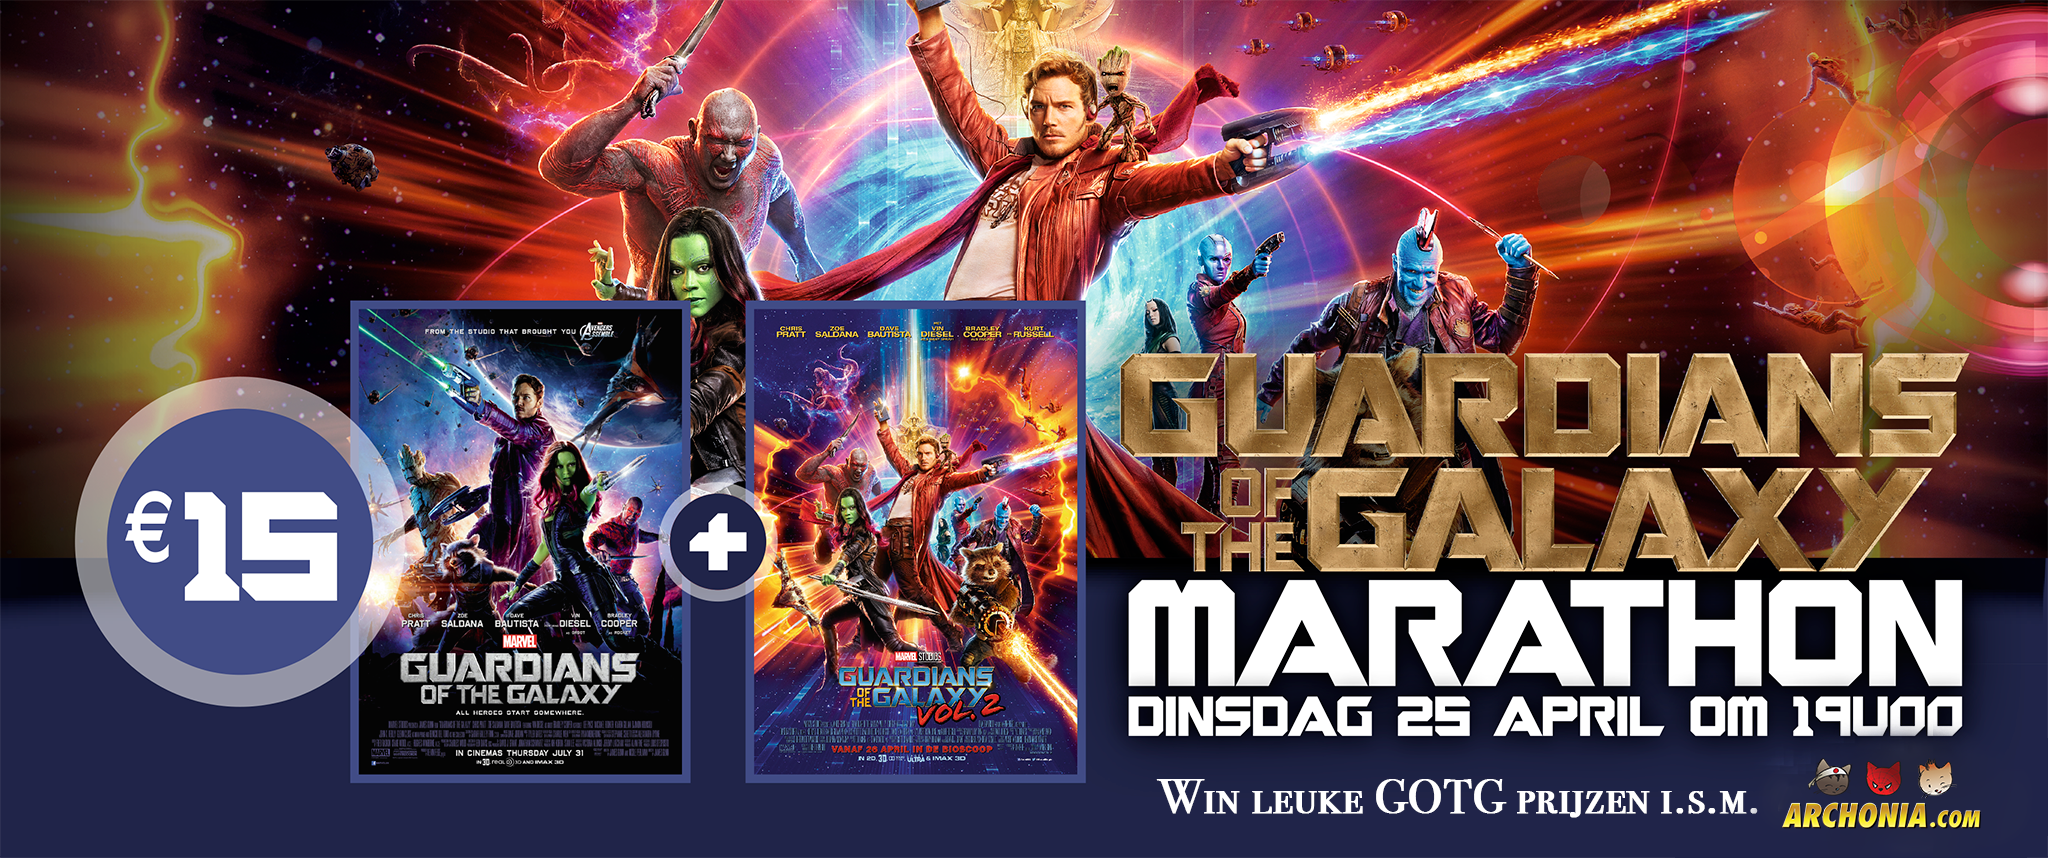 Guardians of the Galaxy Vol 2 Double Bill - Win tickets & prizes!